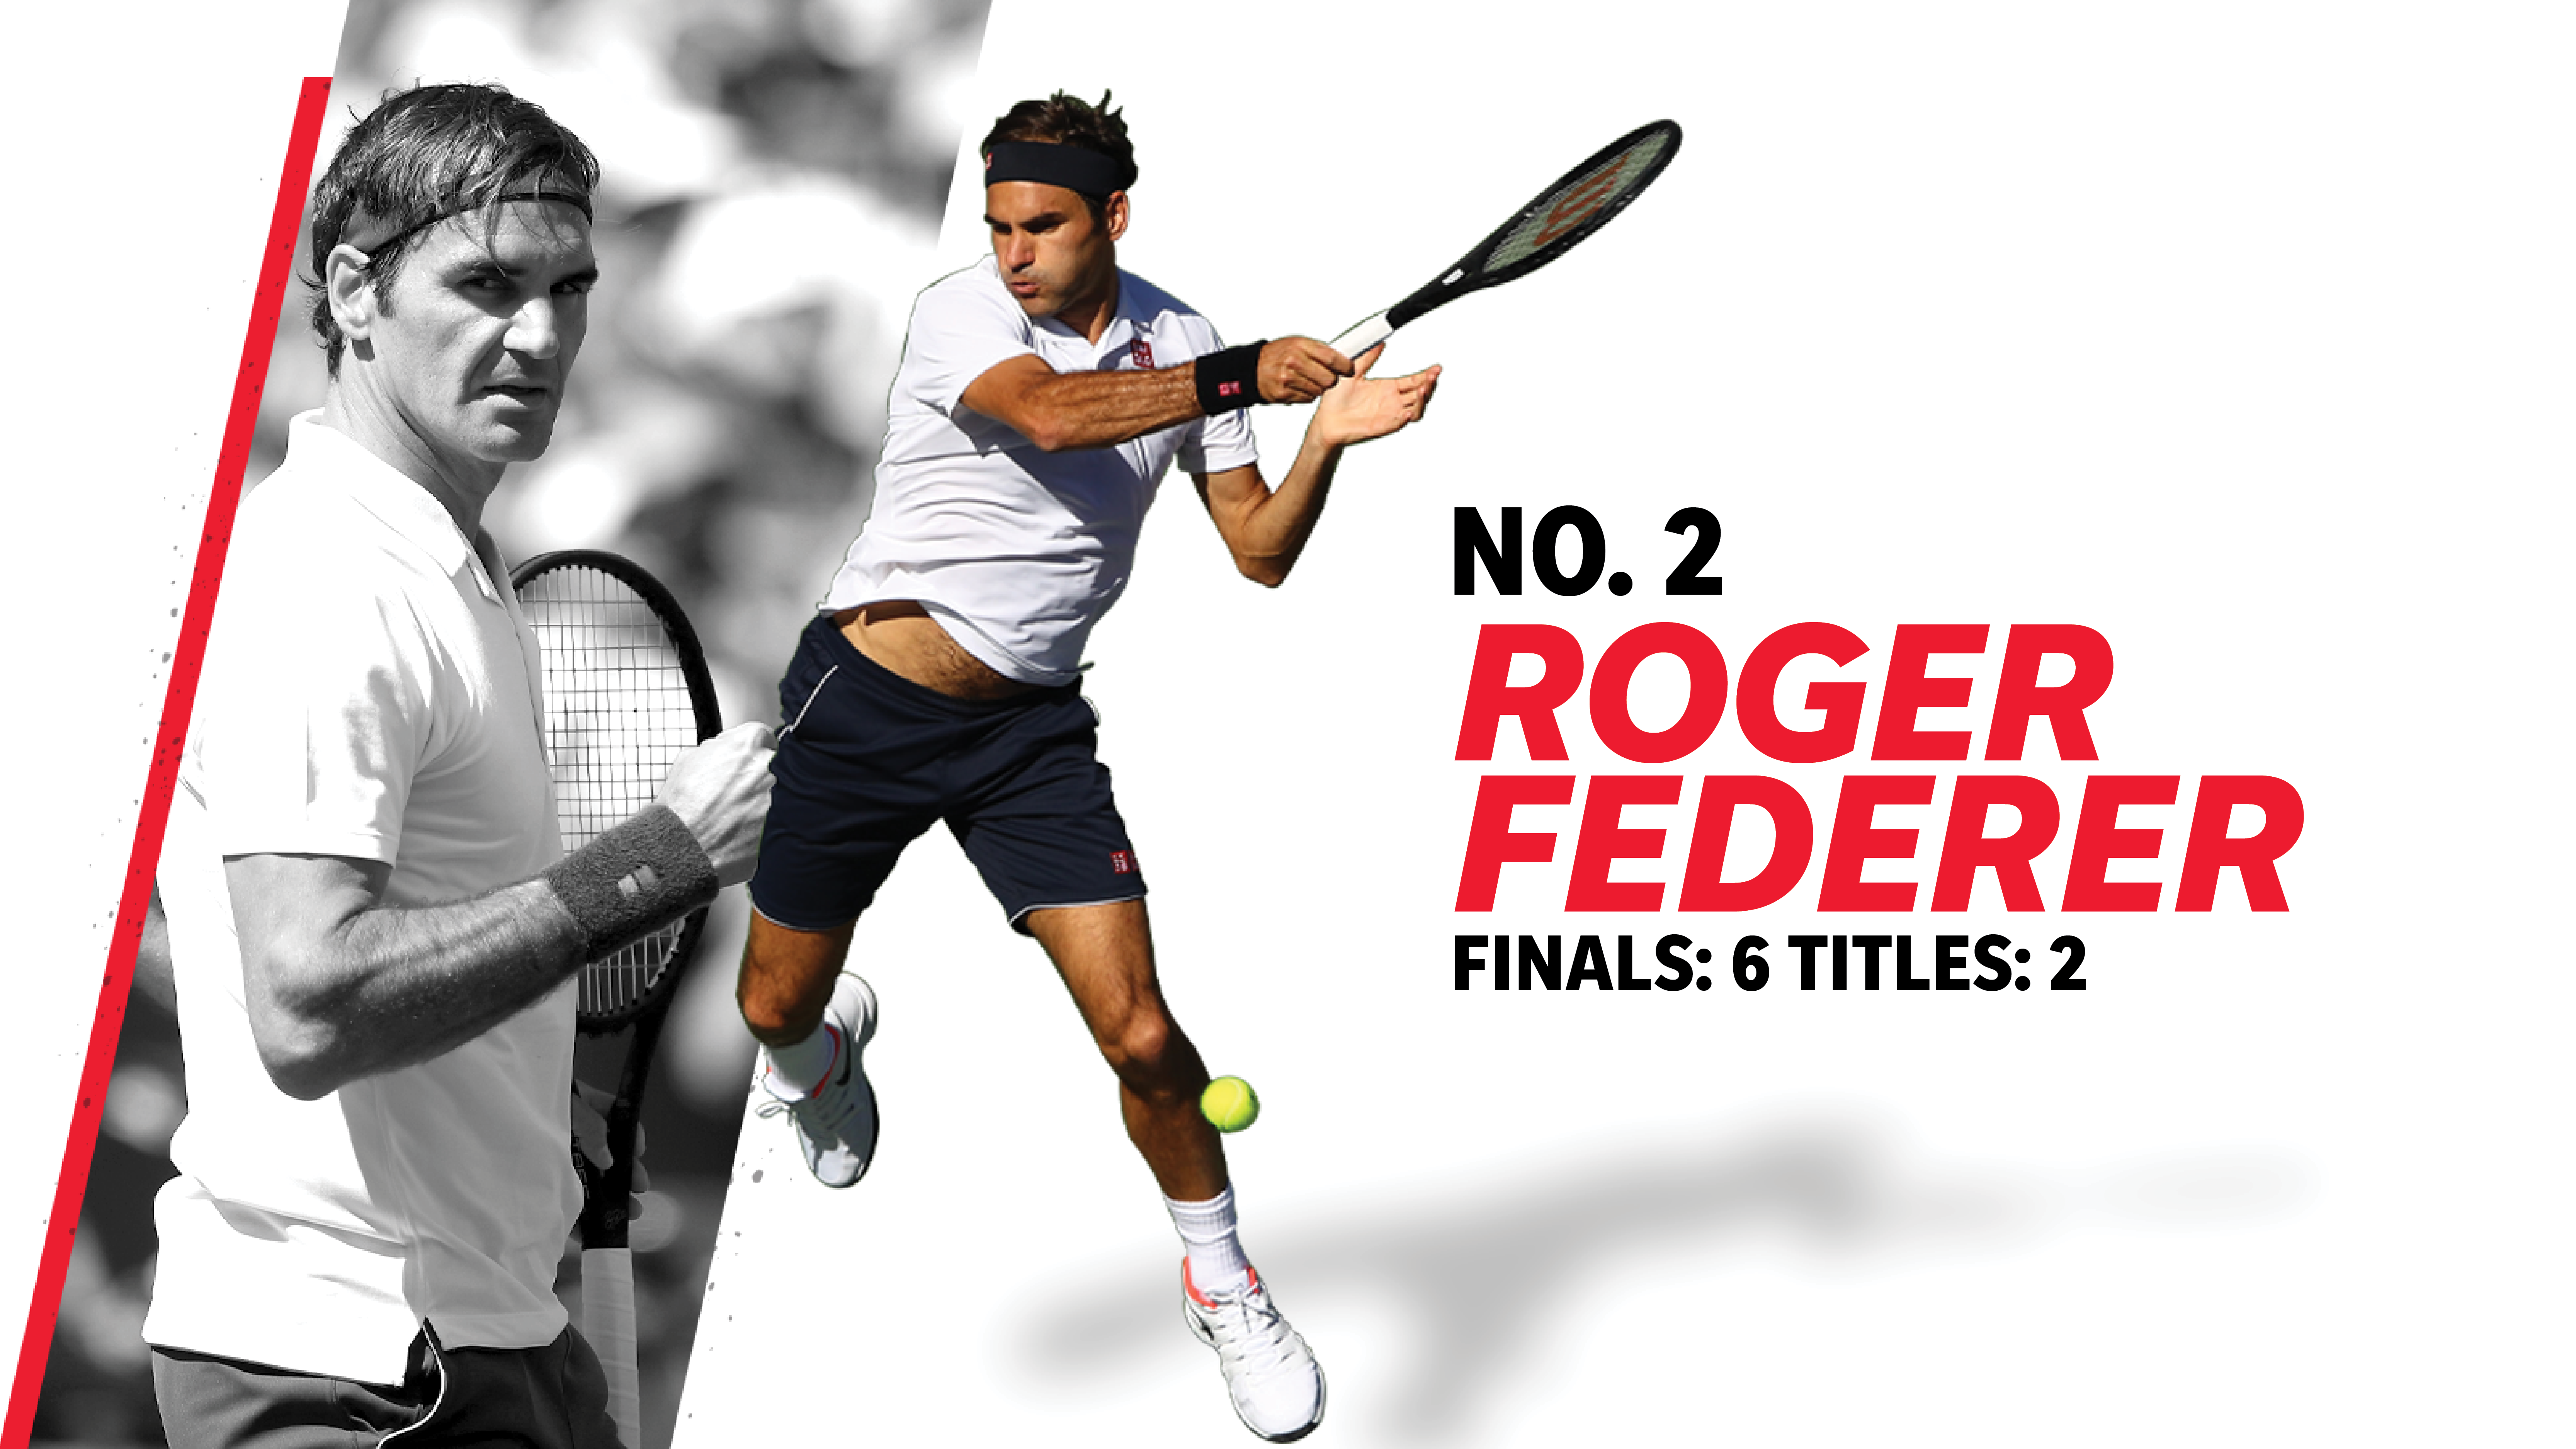 2. Roger Federer (finals: 6, titles: 2)